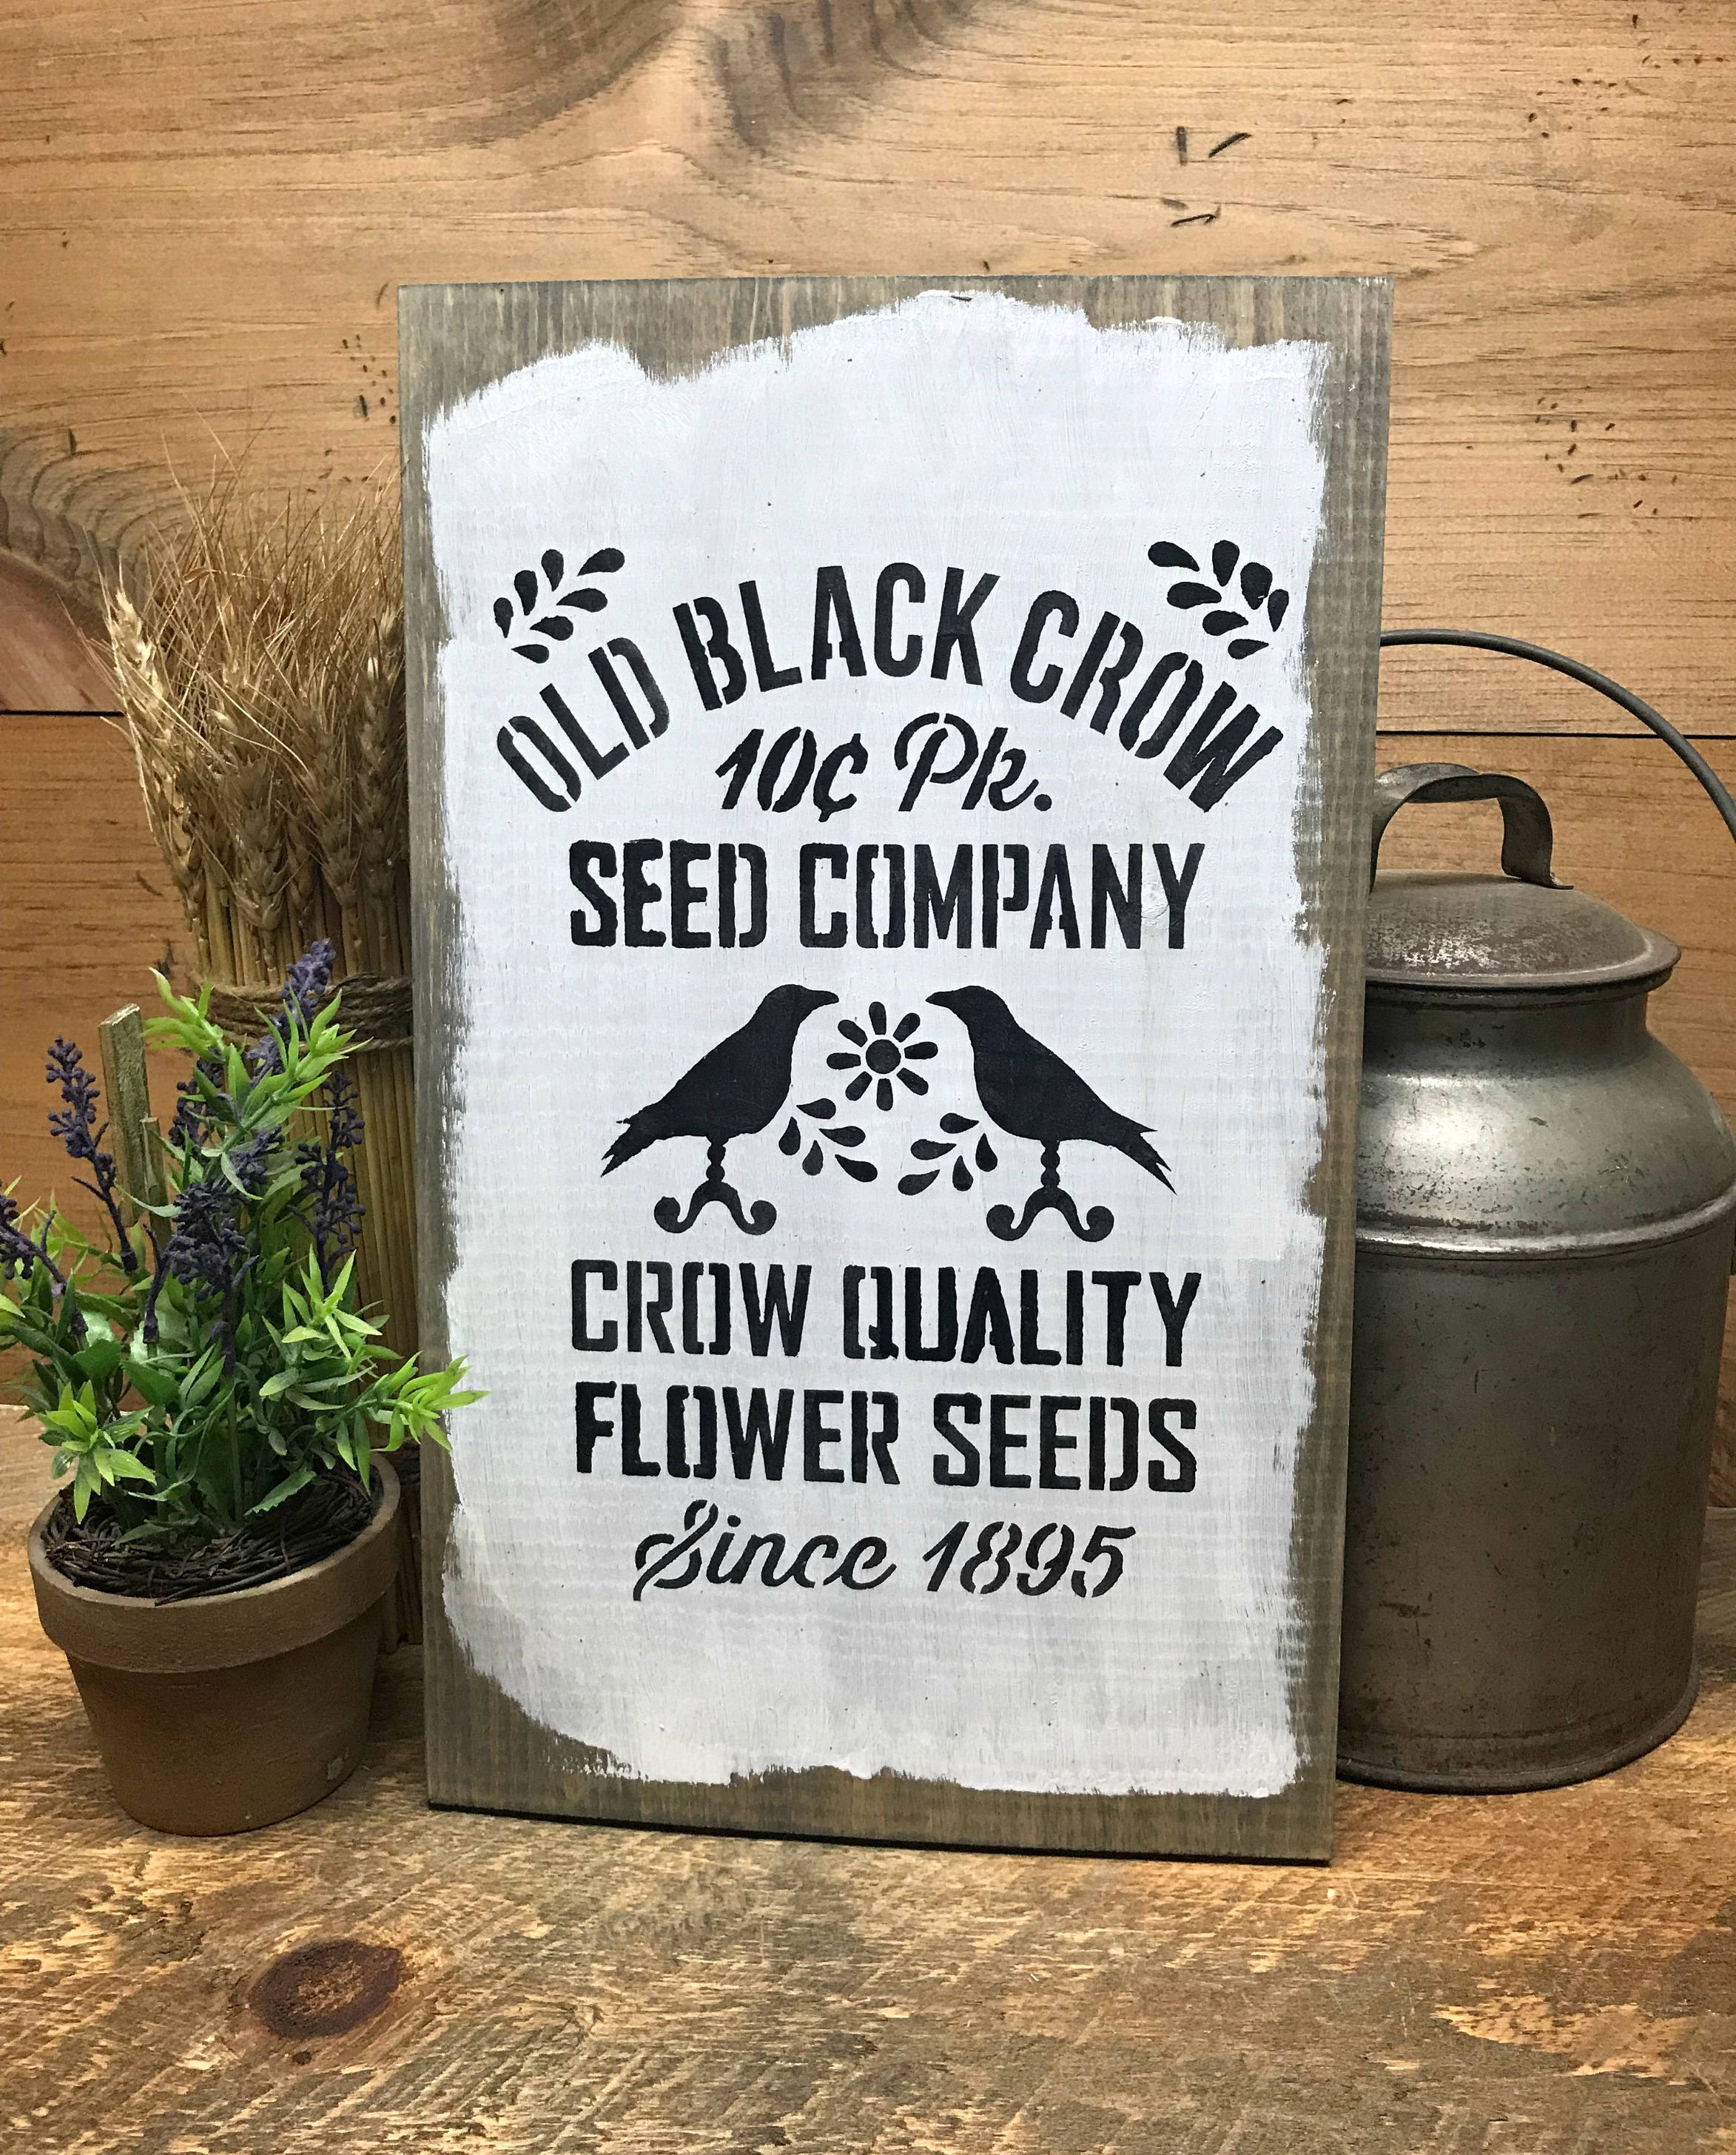 Vintage Wooden Signs Home Decor: Primitive Wooden Sign Crow Decor Old Black Crow Seed